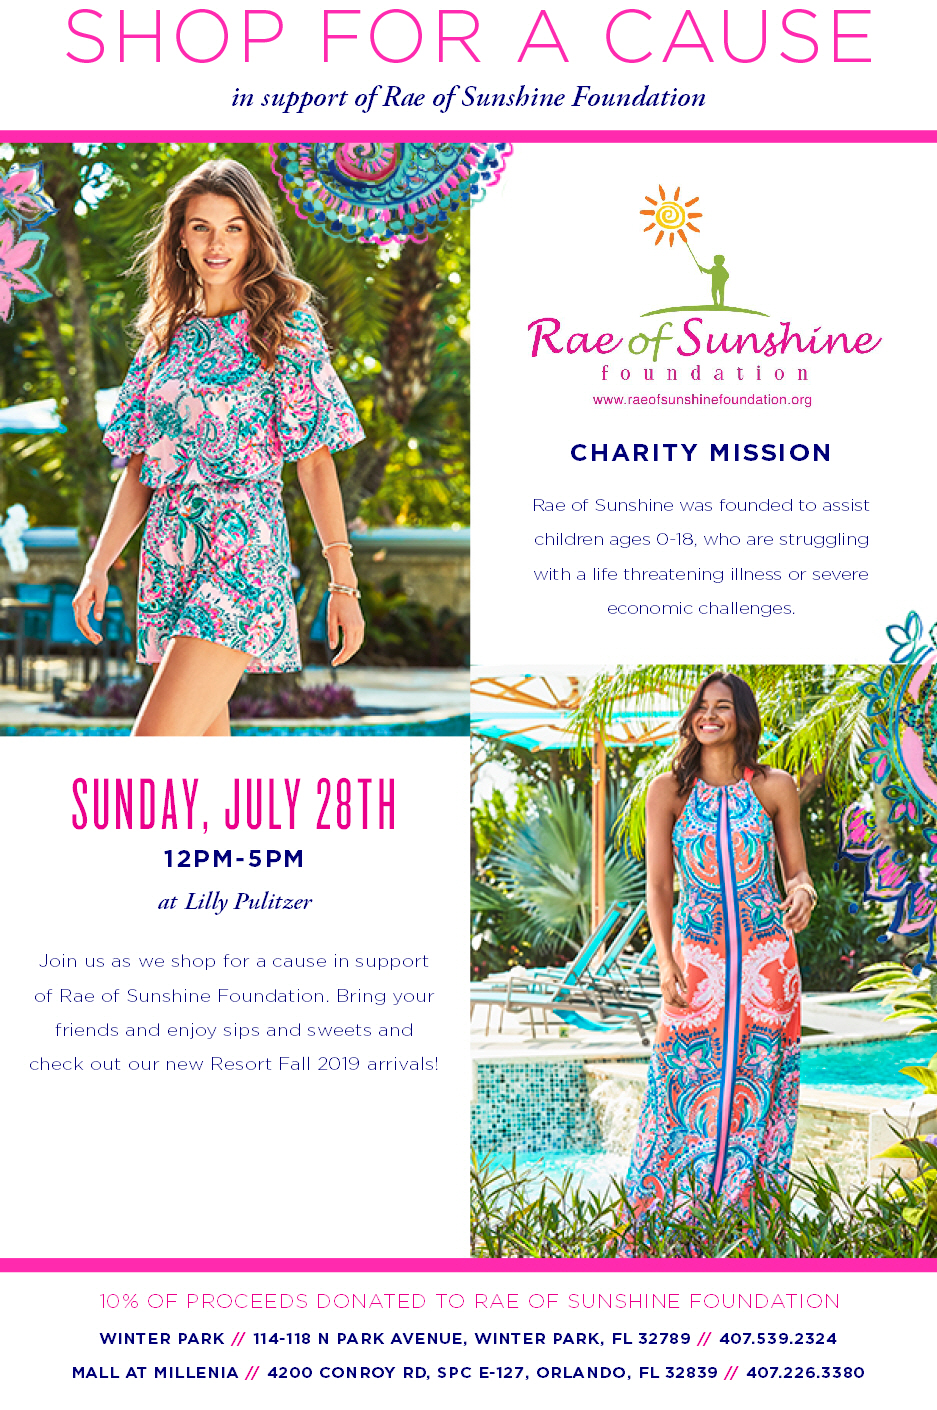 Join us for a day of shopping and supporting families in need.